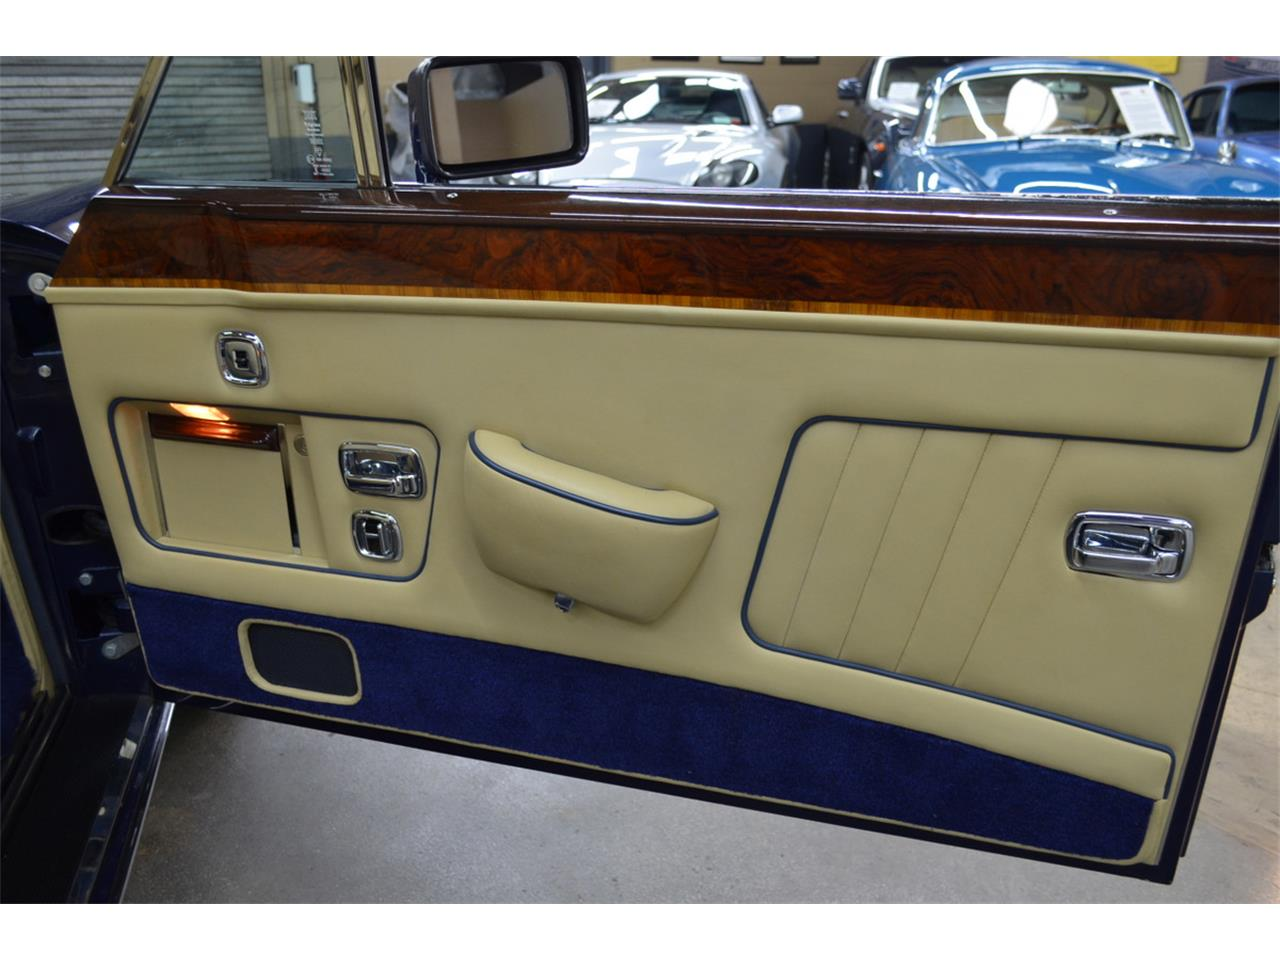 1987 Rolls-Royce Corniche II (CC-1385475) for sale in Huntington Station, New York